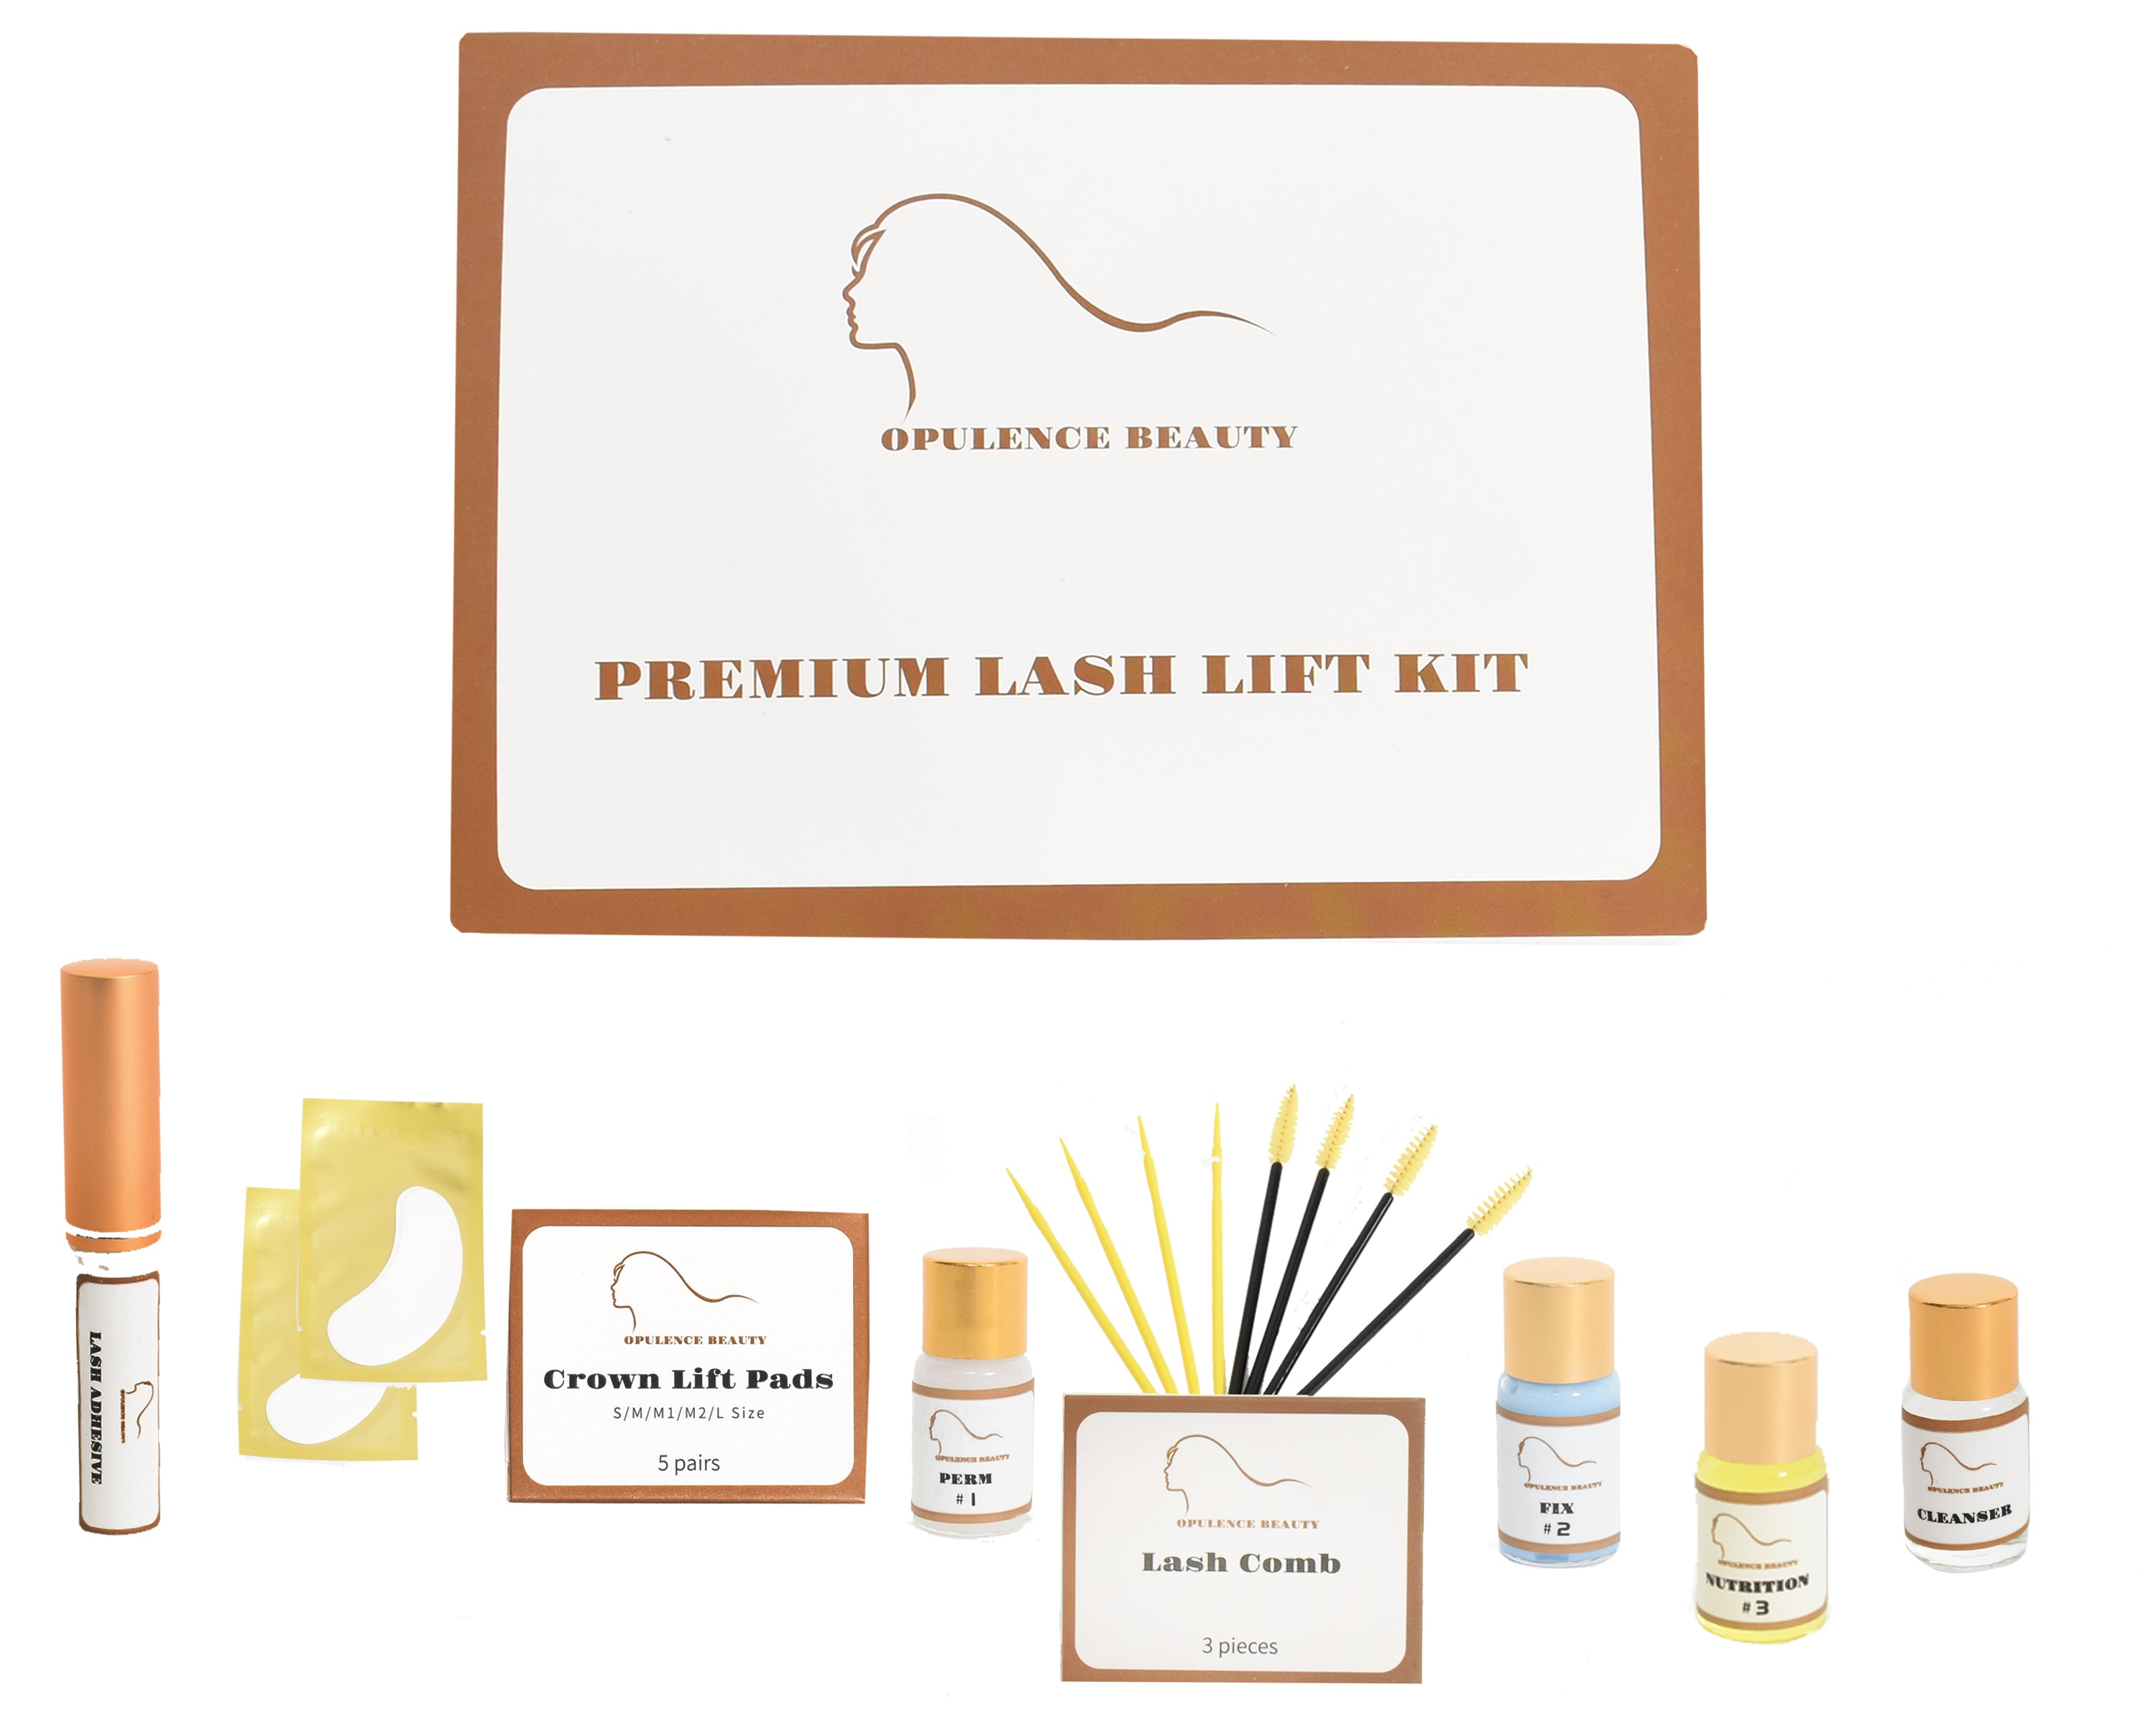 Premium Lash Lift Kit - Opulence Beauty Worldwide